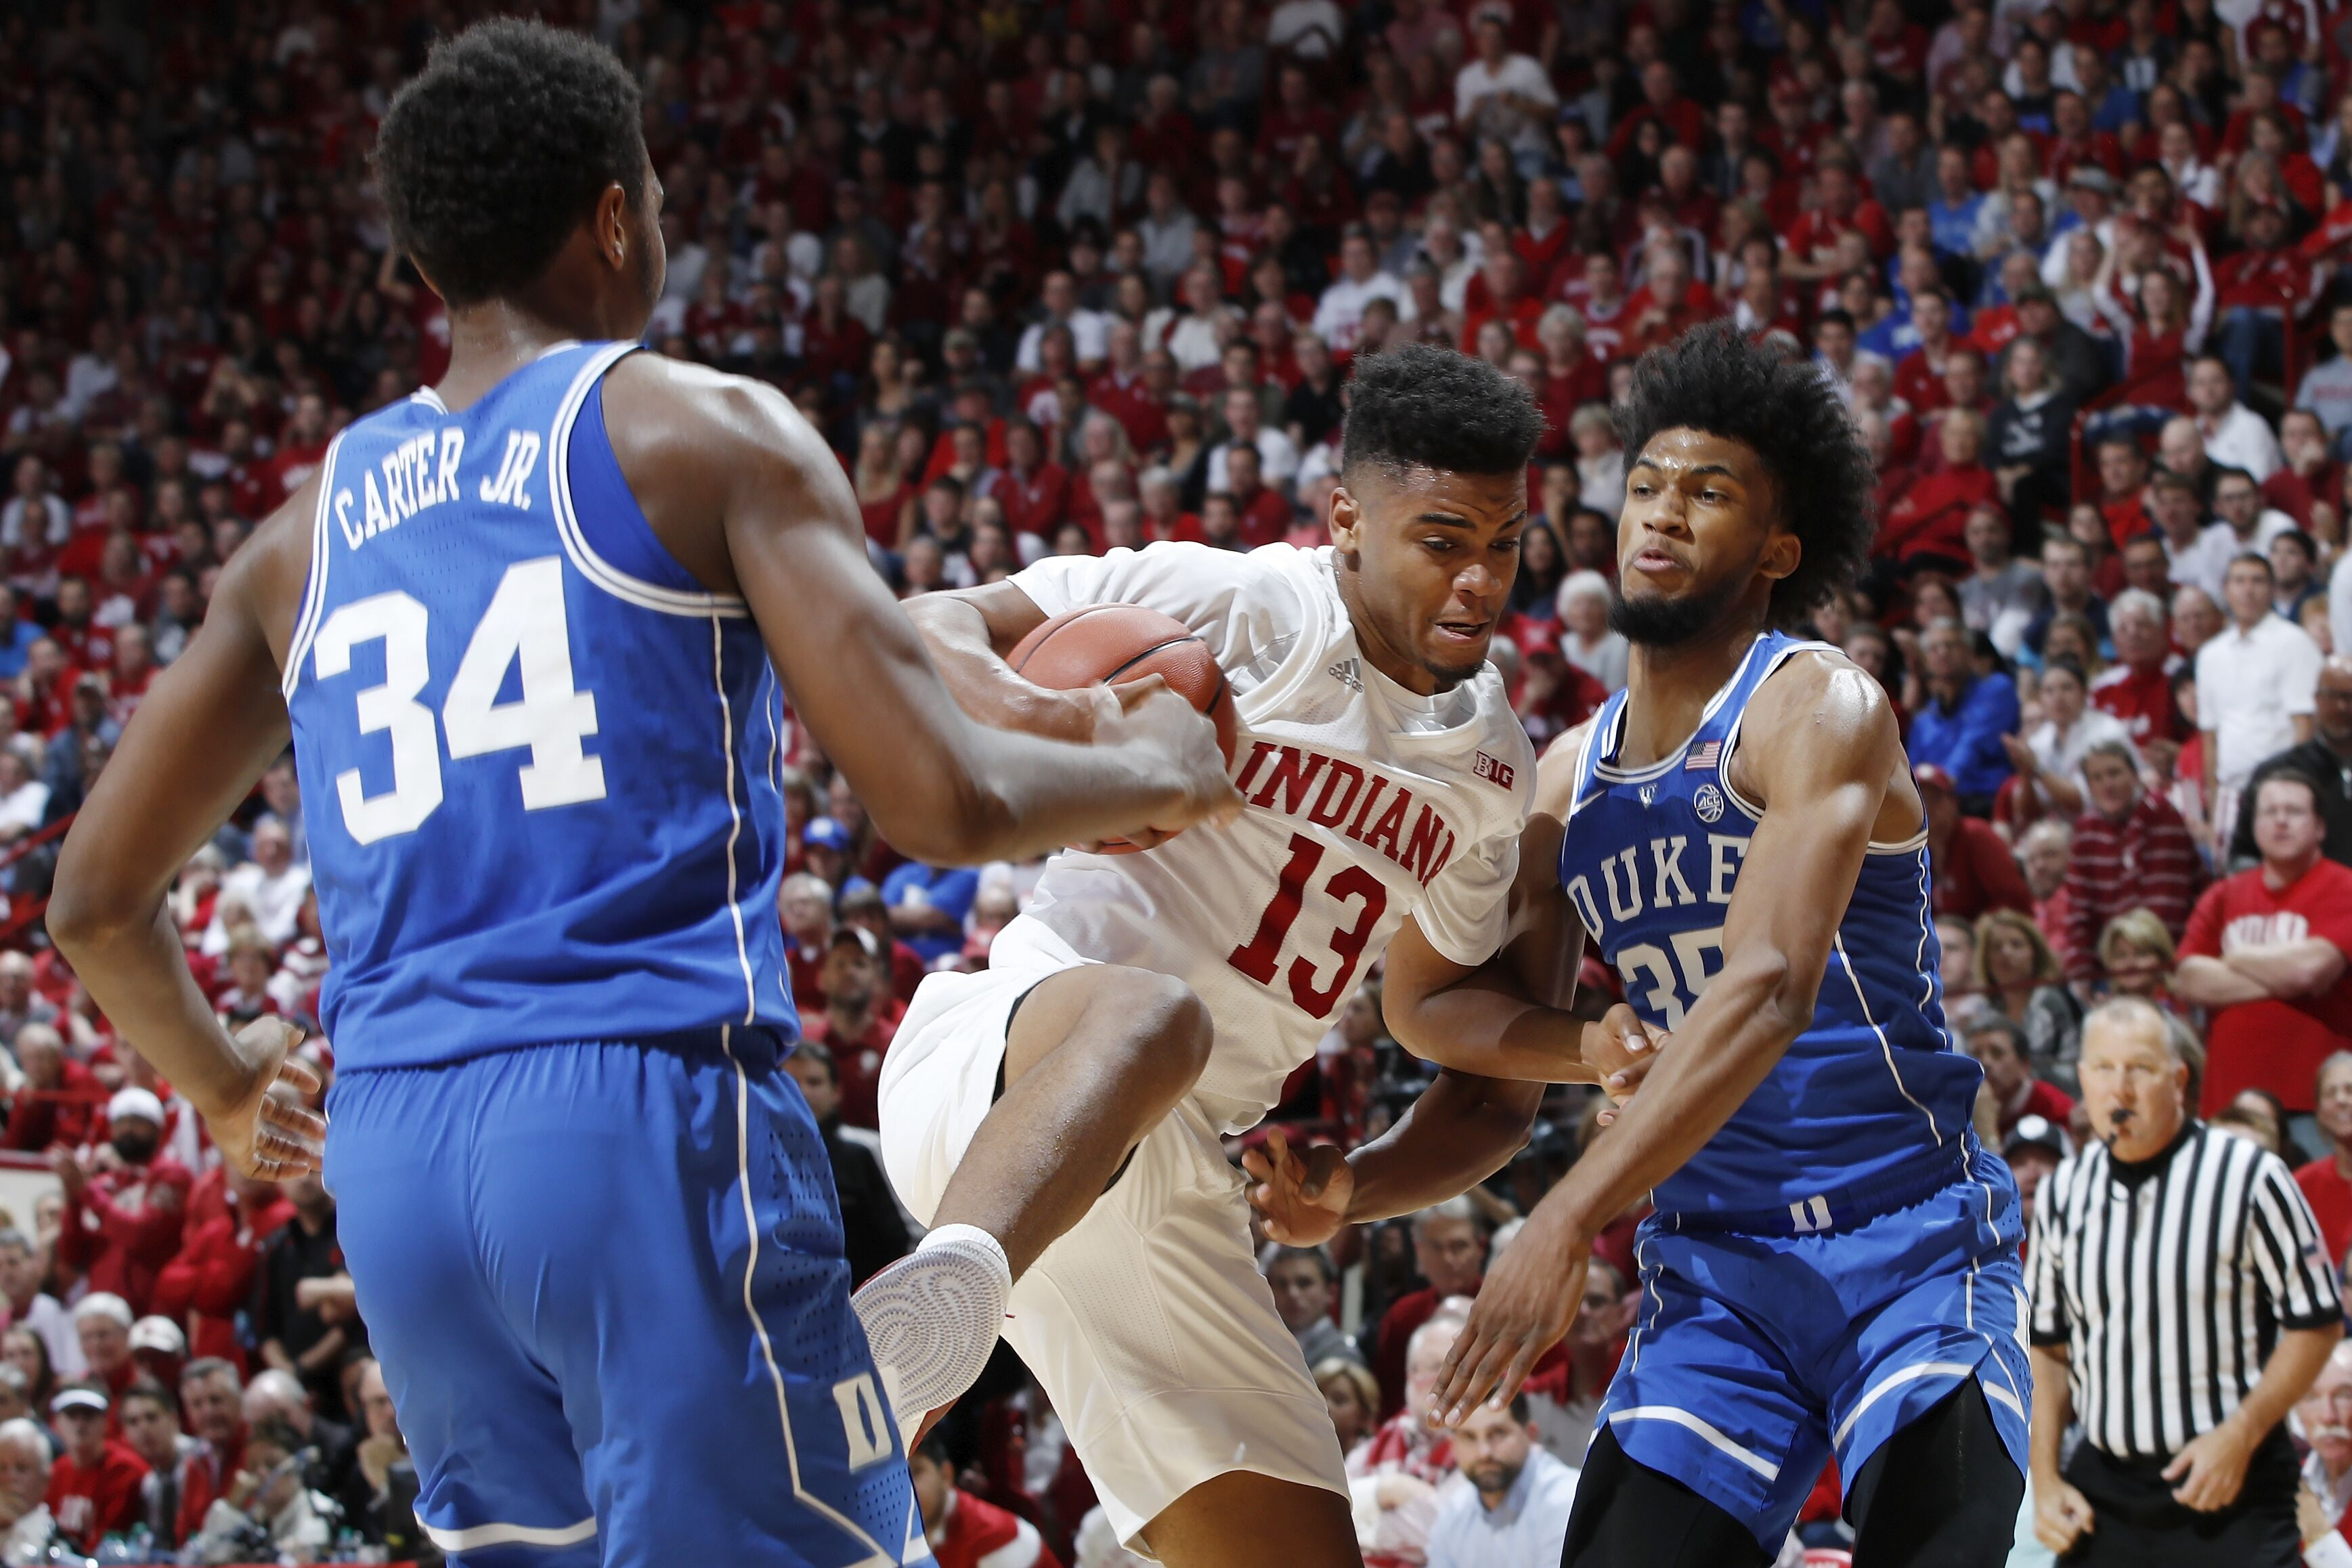 Young Duke basketball team stands tall in hostile Indiana